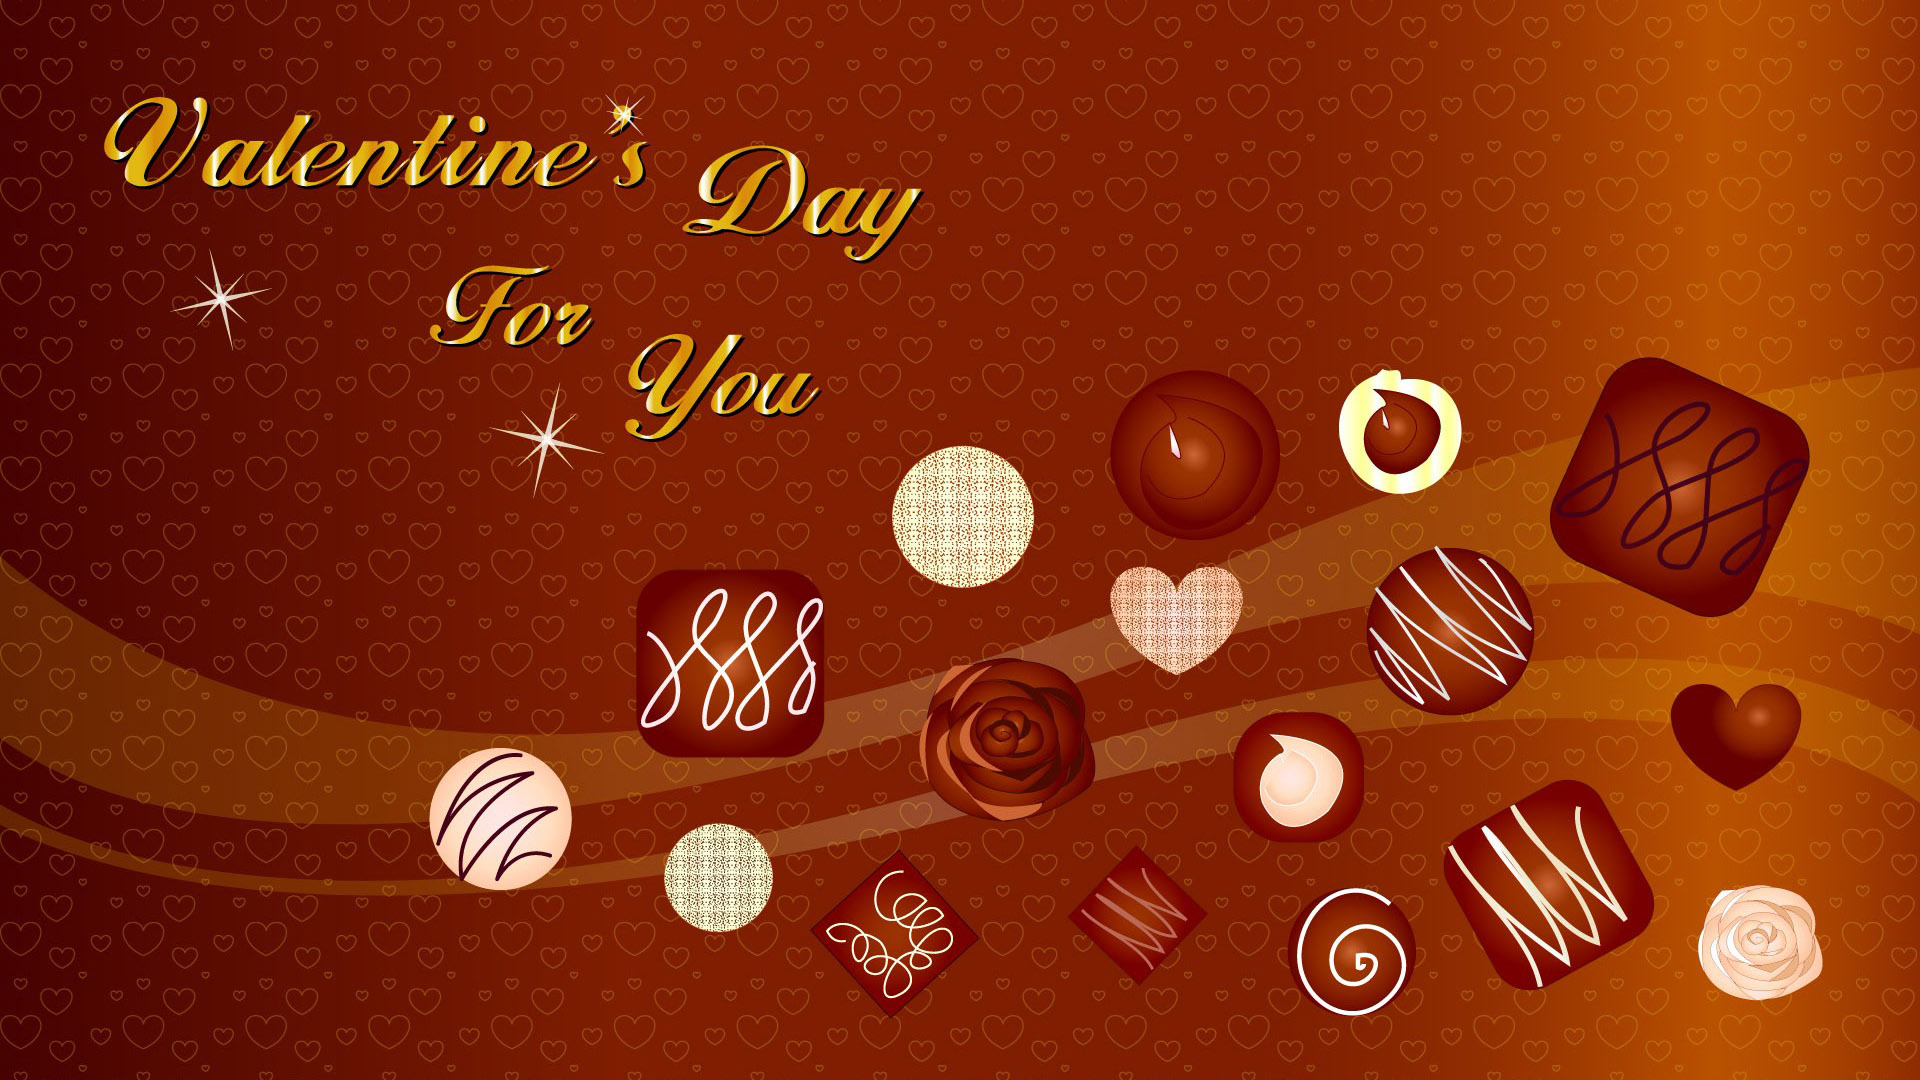 Floating chocolates at Valentines Day wallpaper 41304 1920x1080